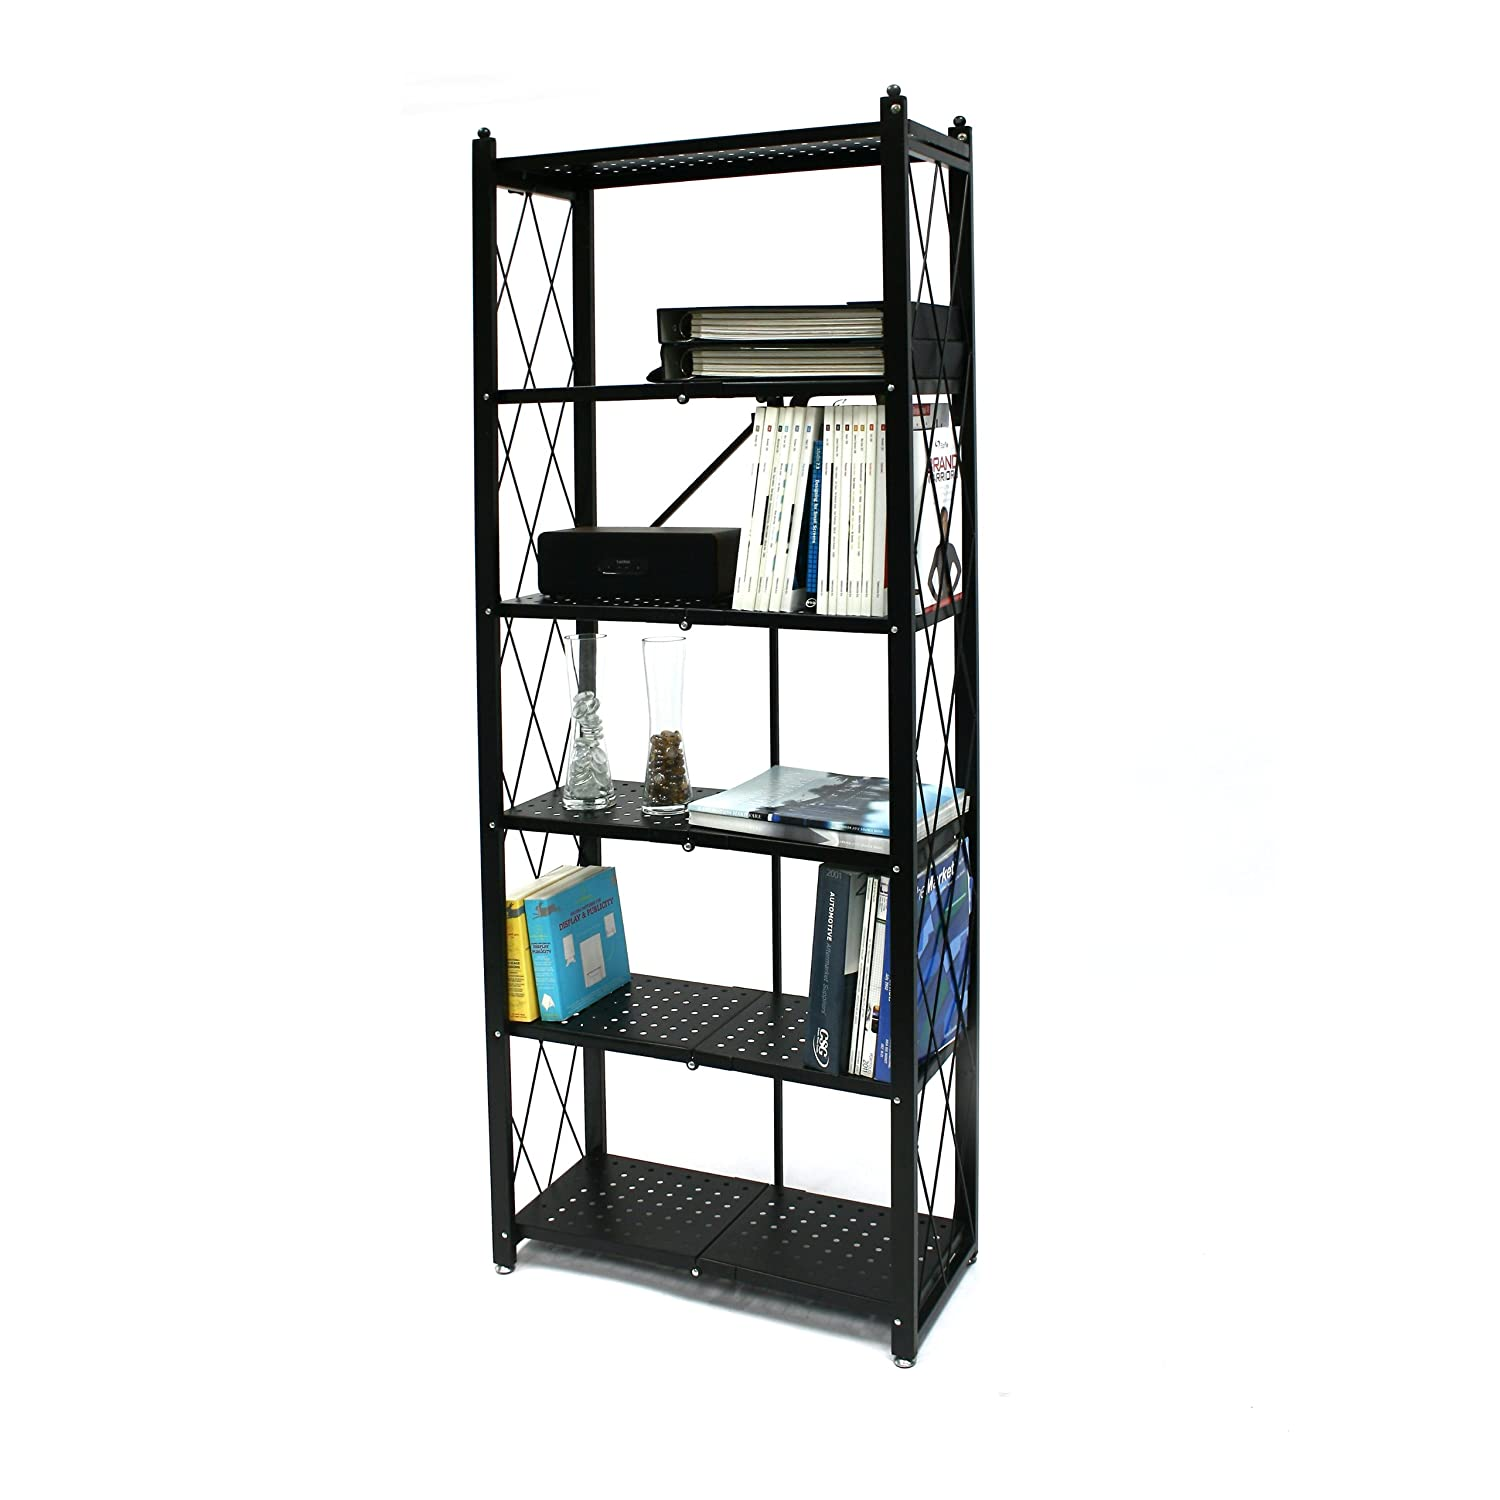 wood shelving portable handy folding is might that stackable for shows come this a shelf in bookshelf collapsible pin craft